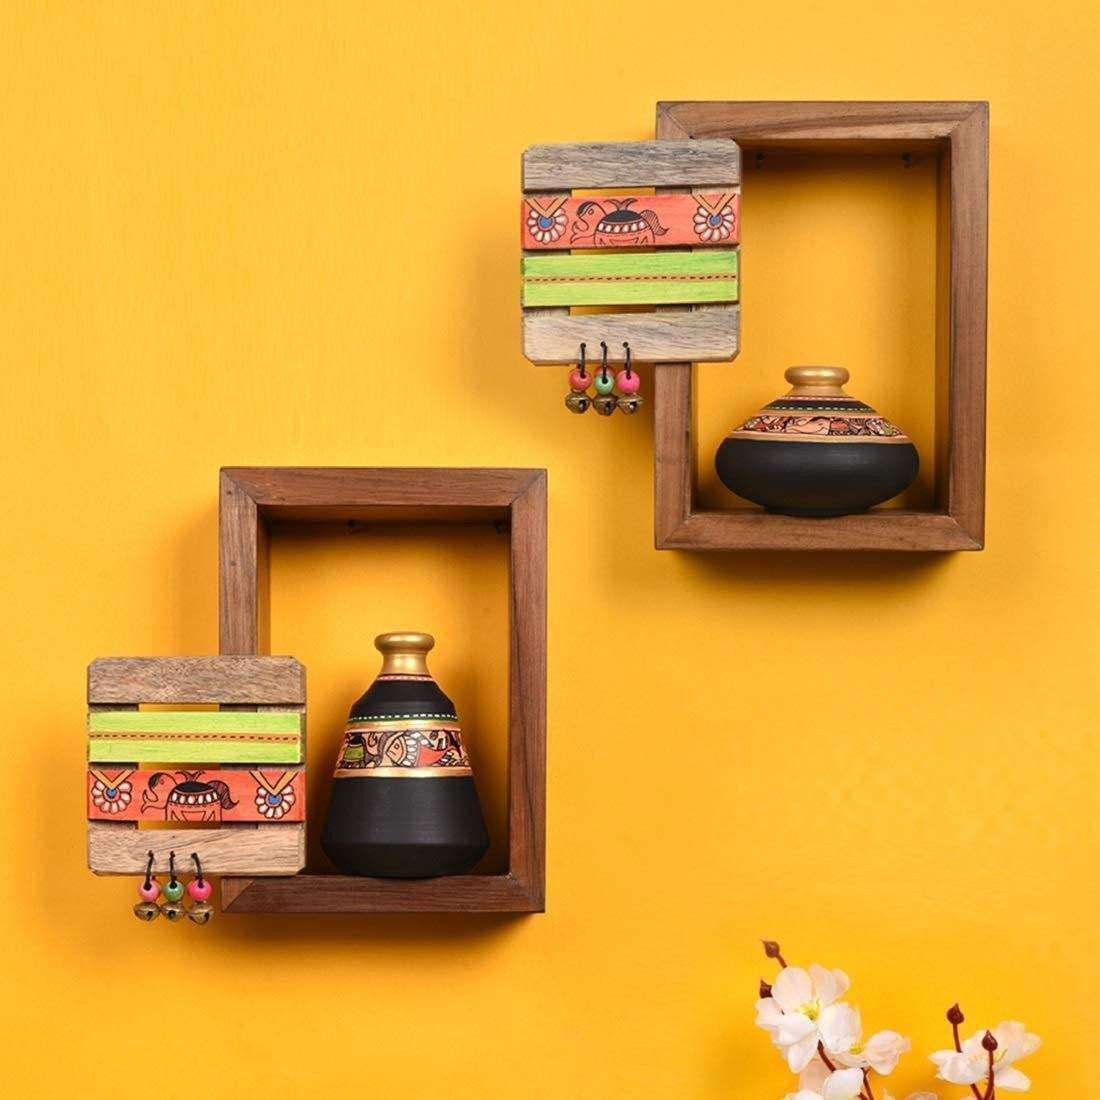 Wall Mounted Wooden Shelves For Living Room Decorative Wall Shelf For Bedroom Artystagallery